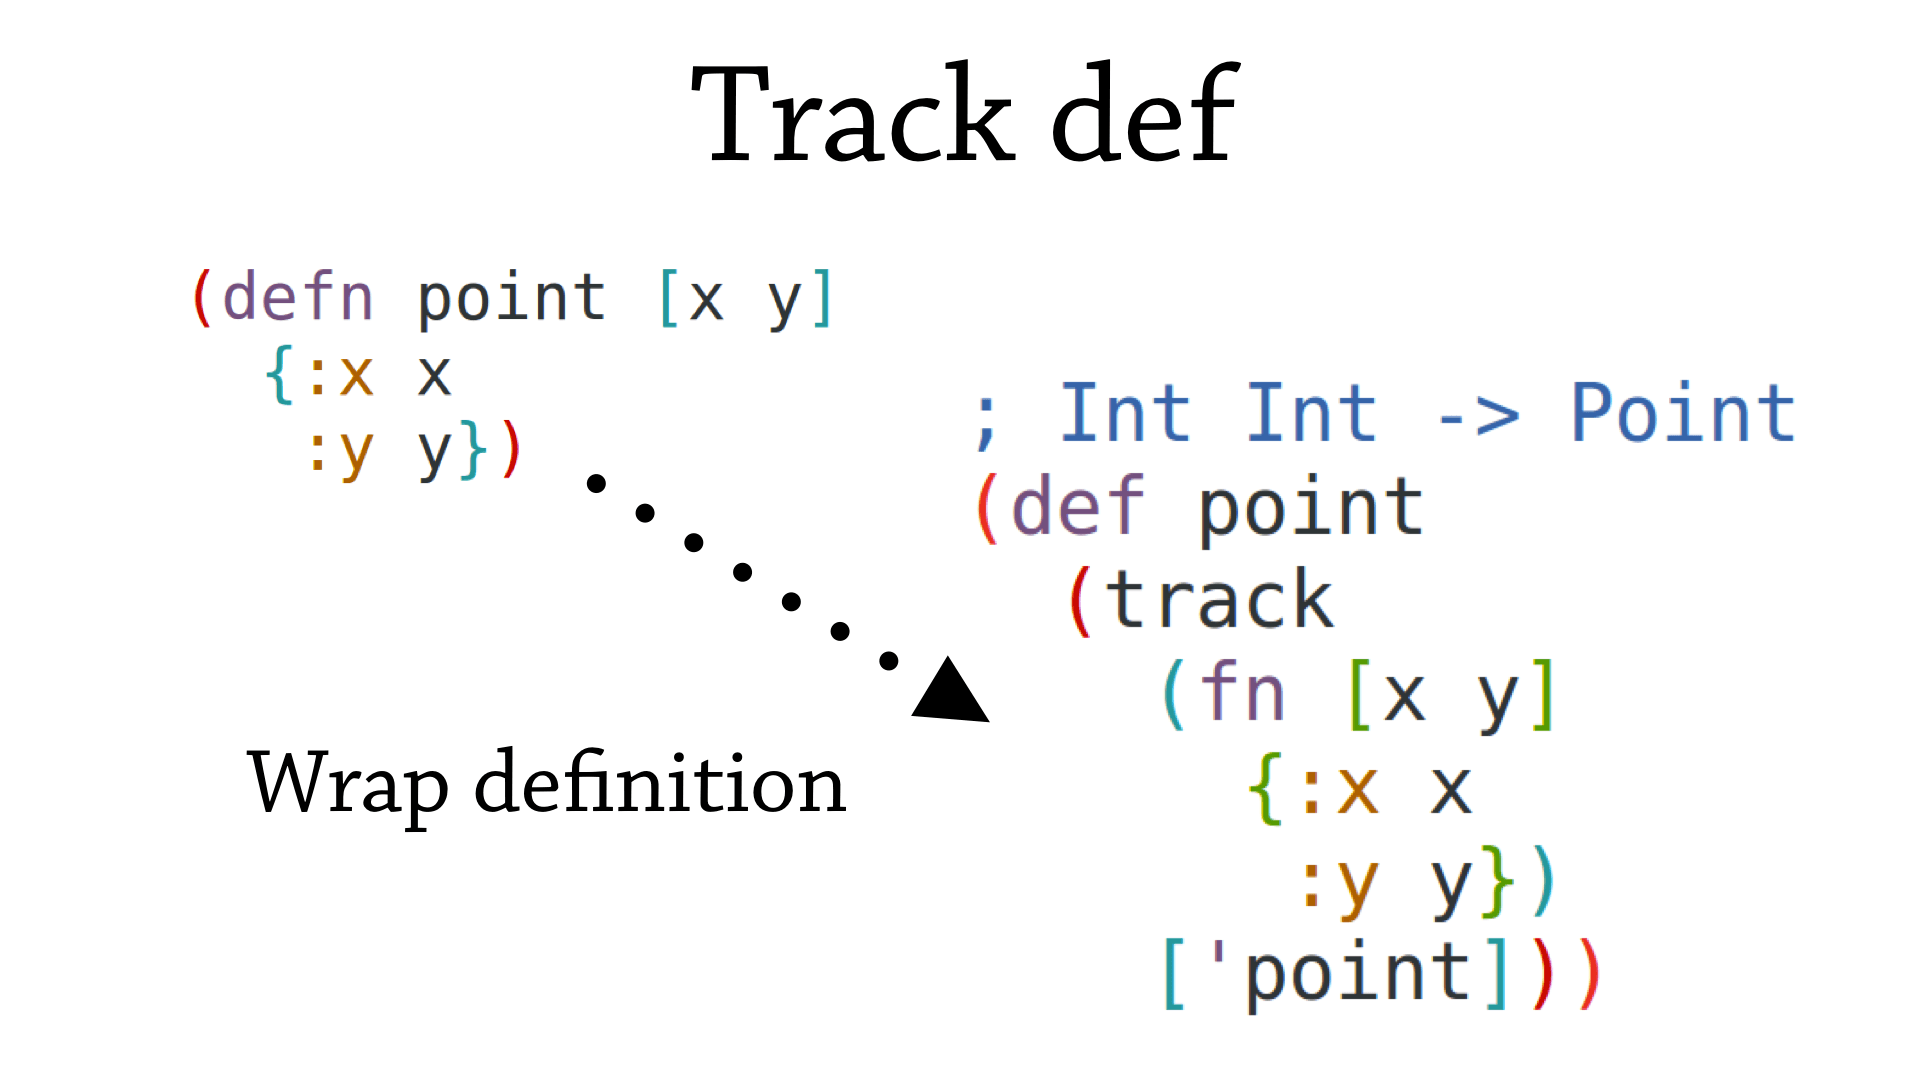 Tracking a function definition